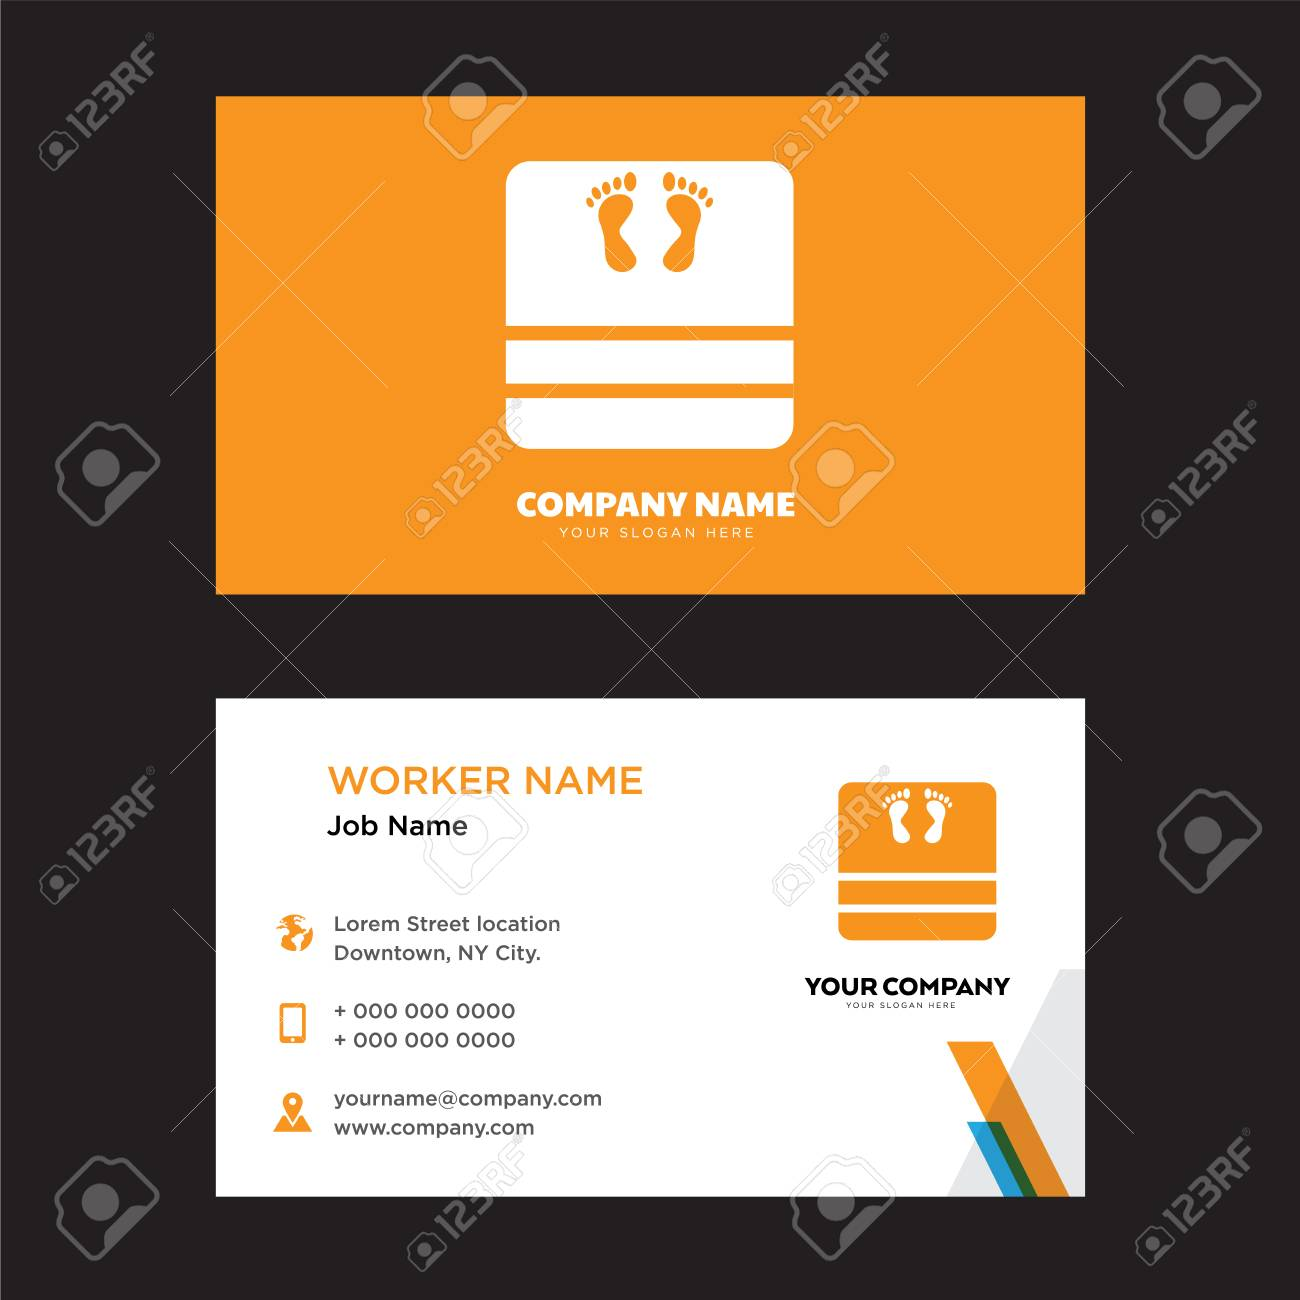 Medical business card design template visiting for your company medical business card design template visiting for your company modern creative and clean identity fbccfo Gallery